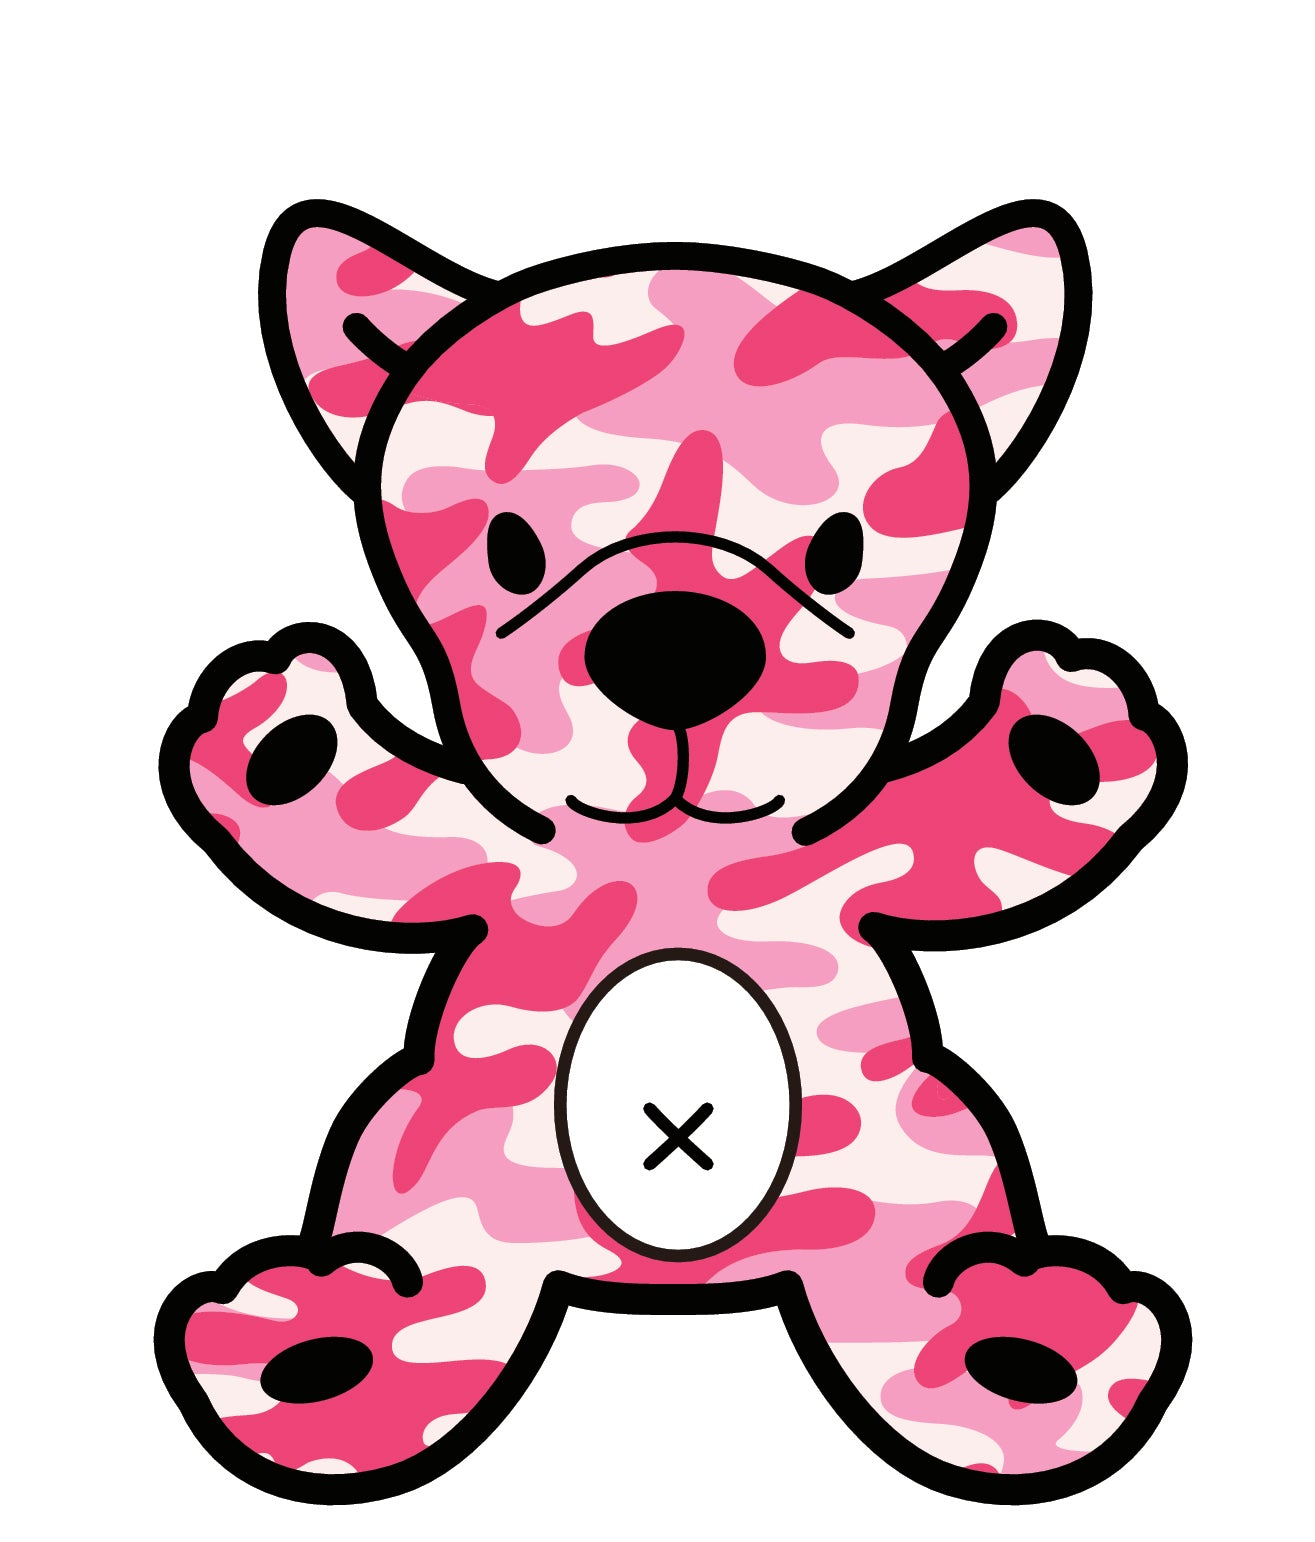 Adorable Pink Camouflage Puppy Dog (2) Vinyl Decal Sticker